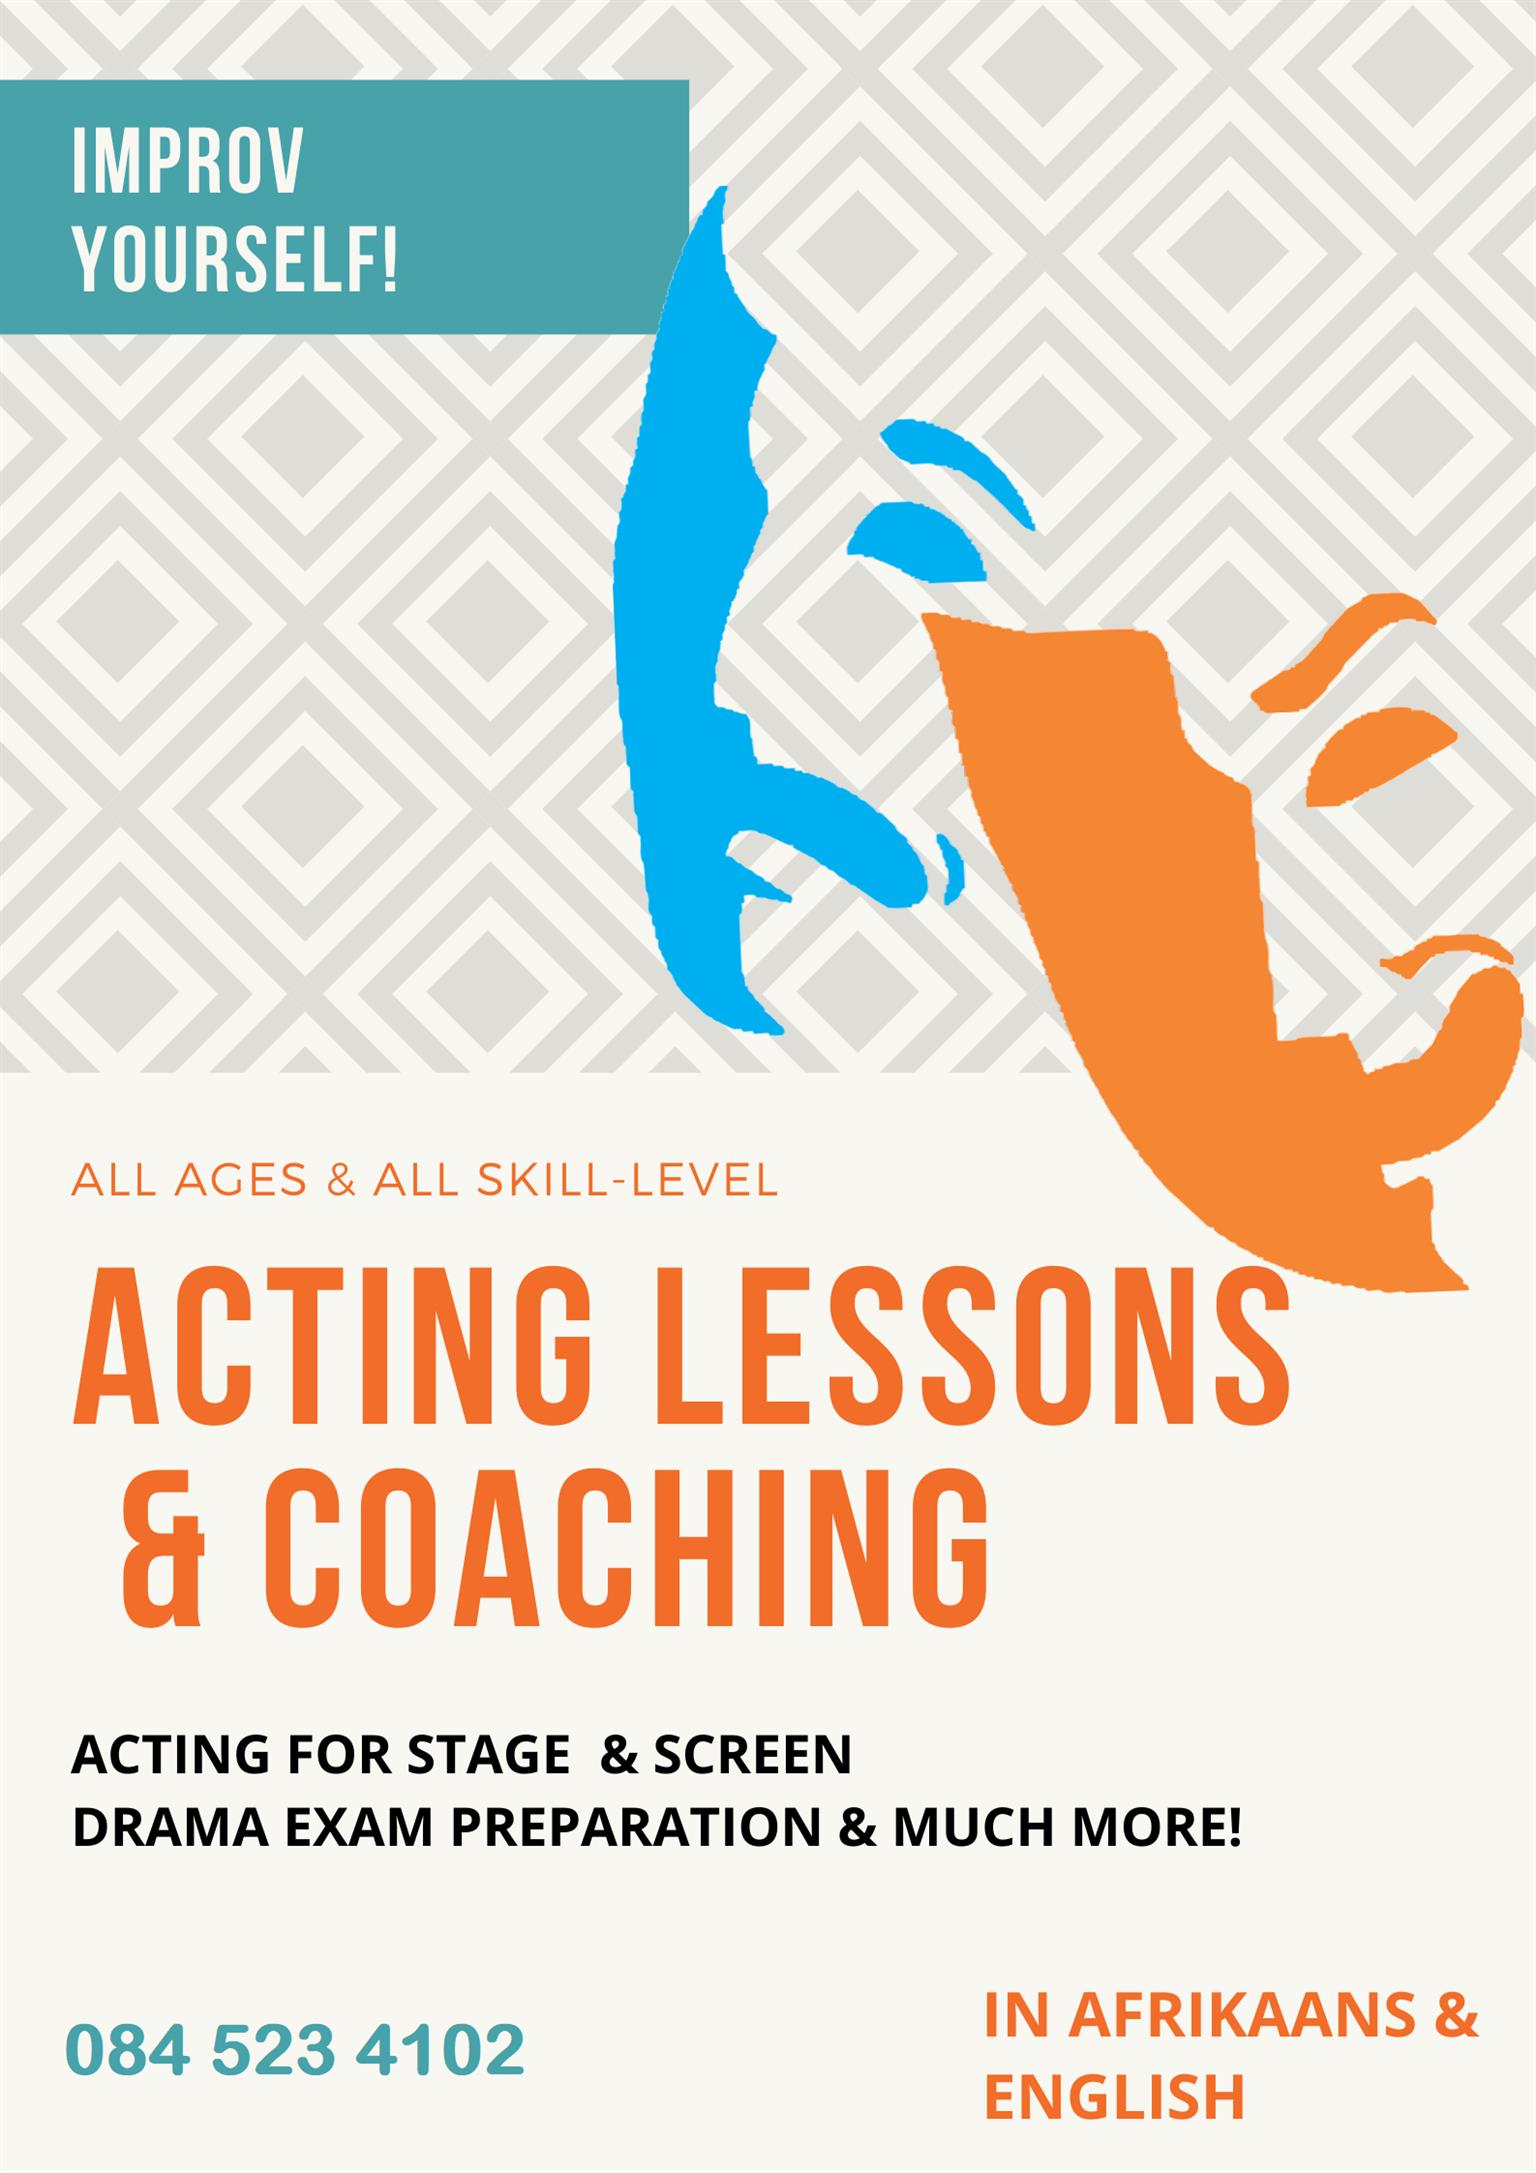 Acting lessons and Coaching